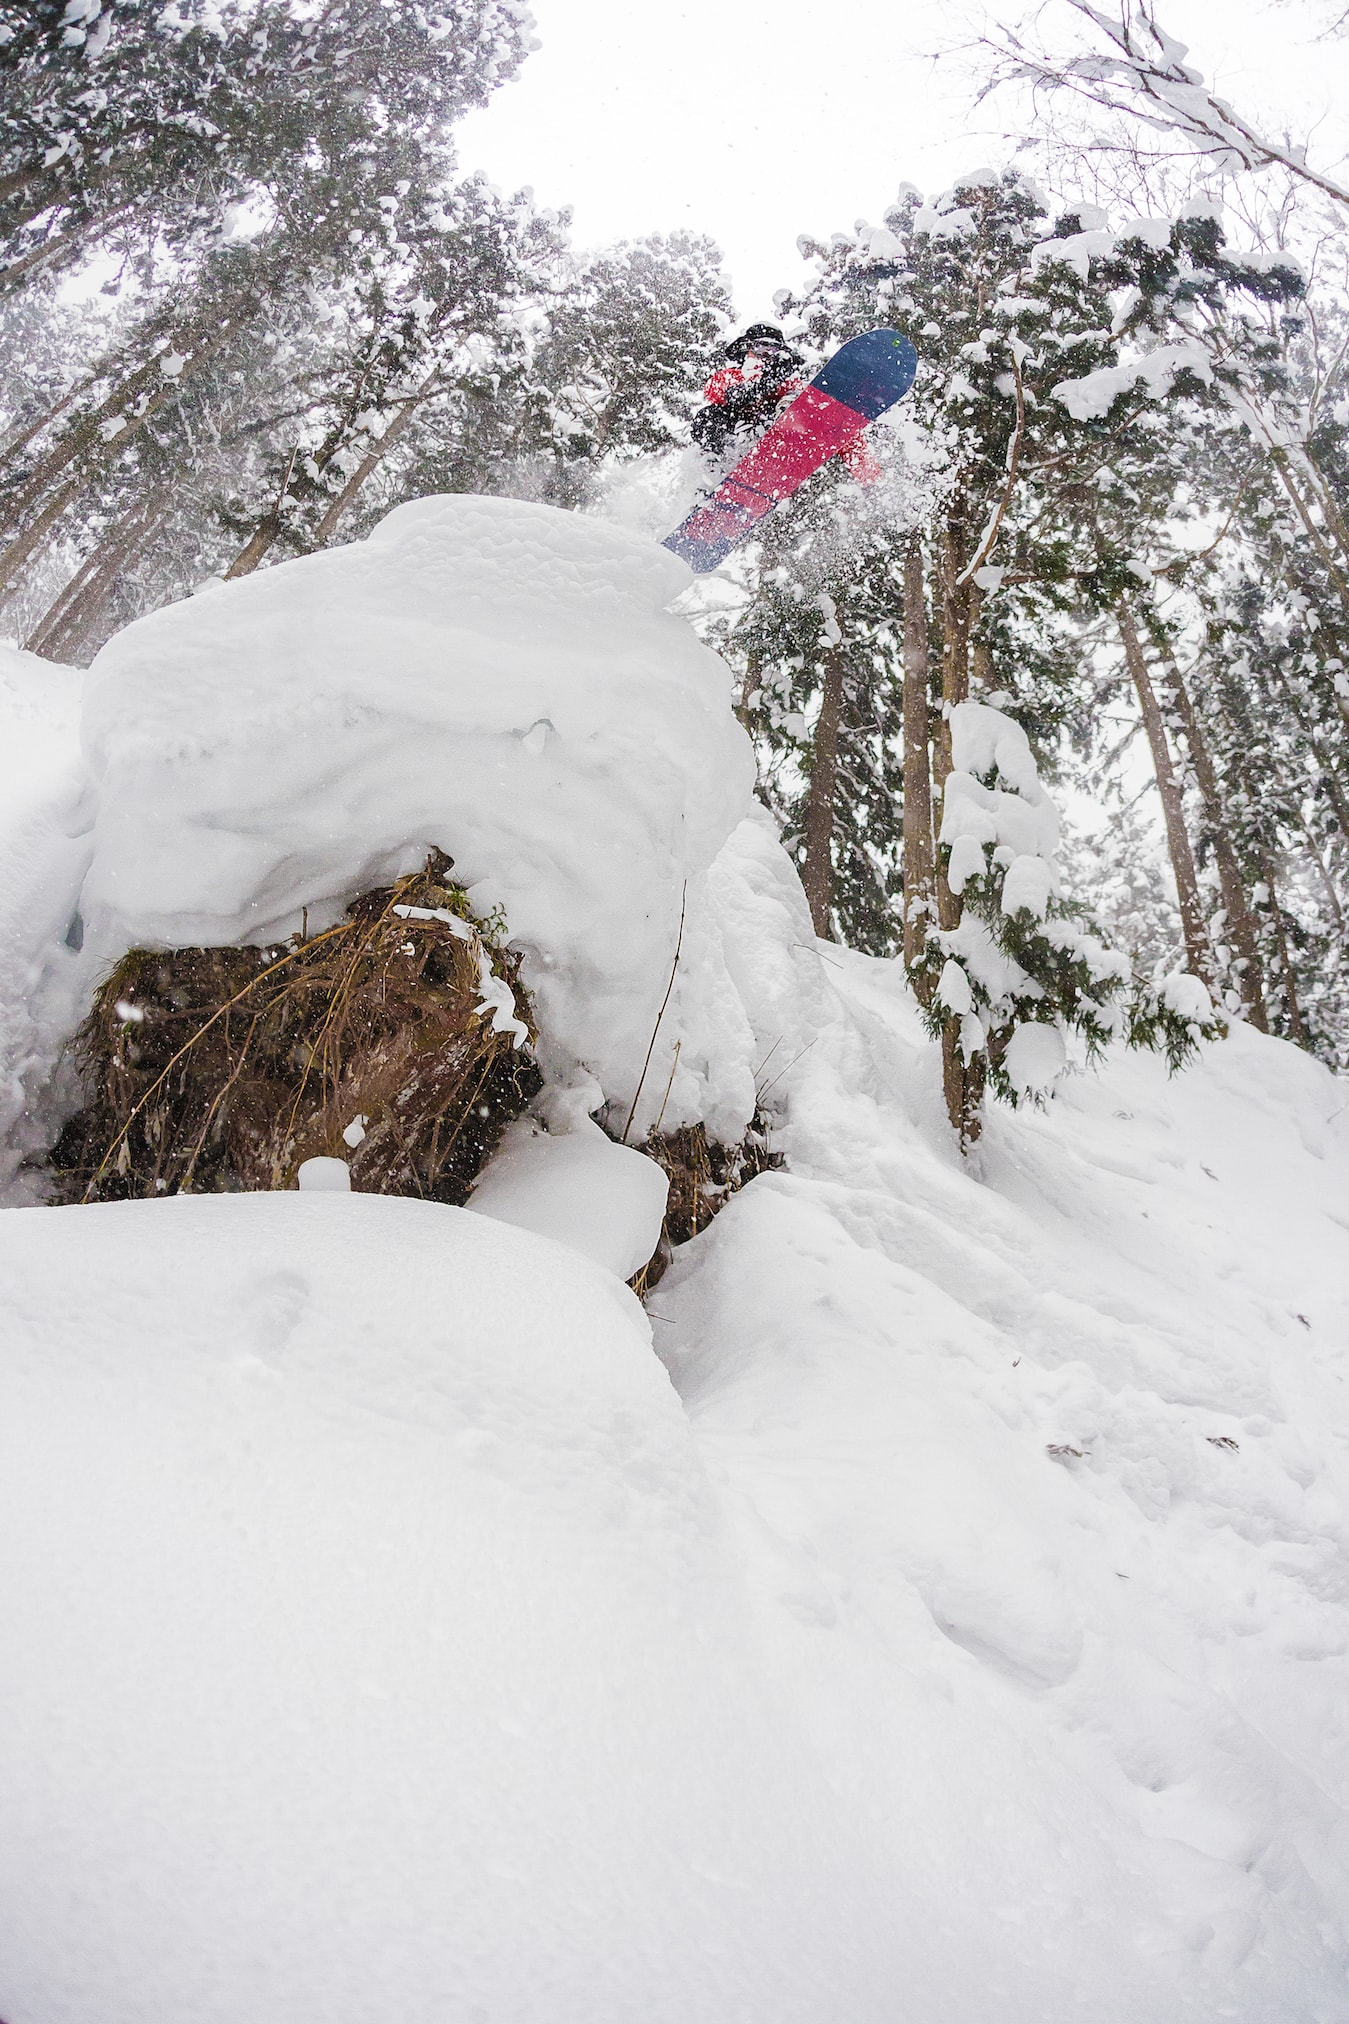 Cliff Drop snowboarden in Nozawa Onsen during Powder Culture Tour with First Tours